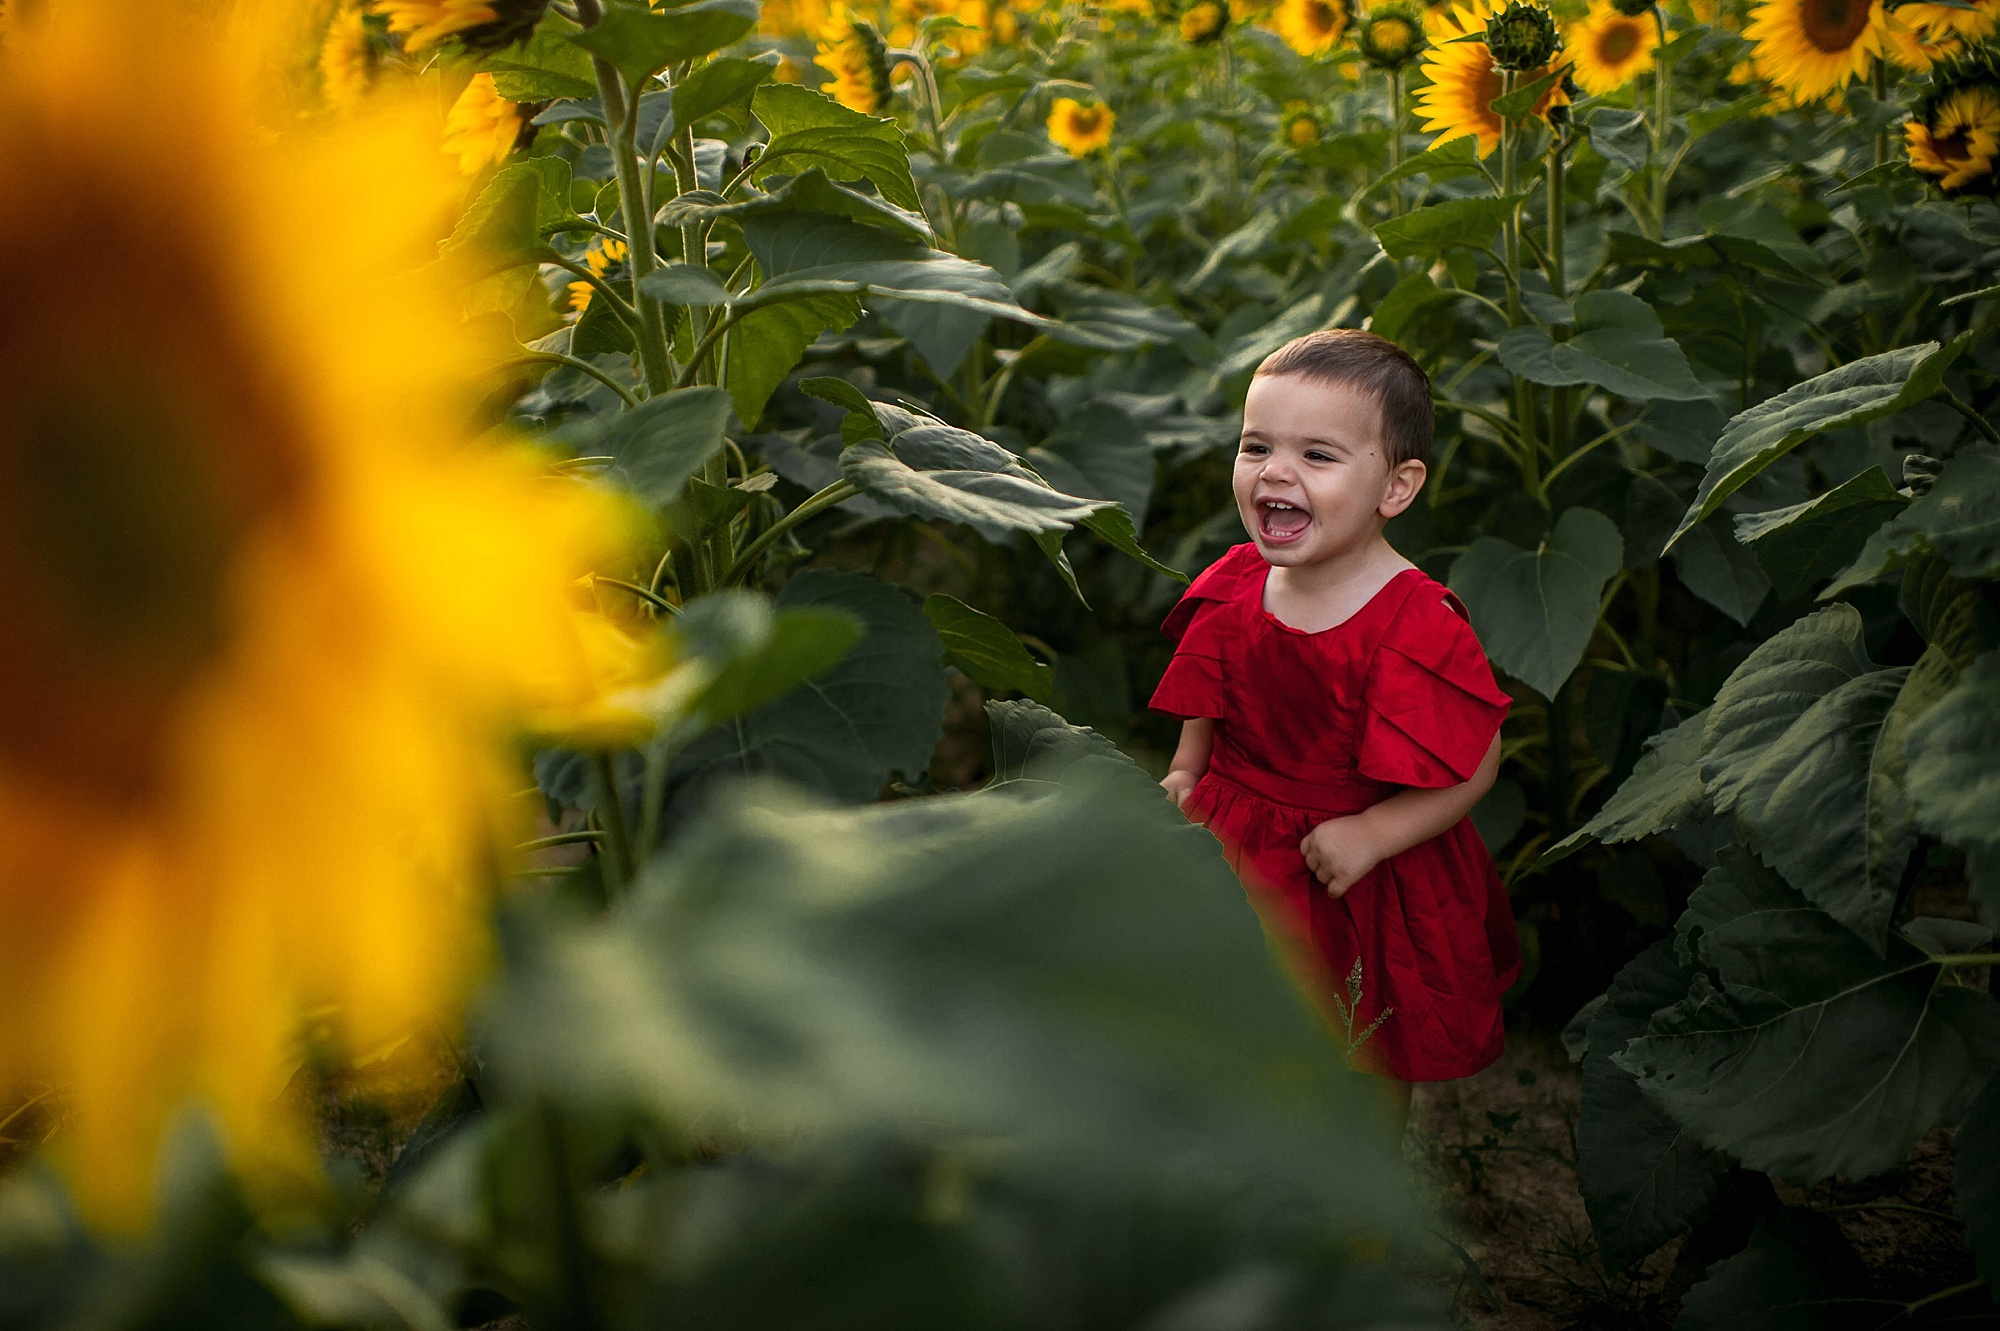 lauren-grayson-photography-cleveland-ohio-photographer-sunflower-fields-sunset-golden-hour-photo-shoot-mommy-and-me-family-child-photographer_0581.jpg